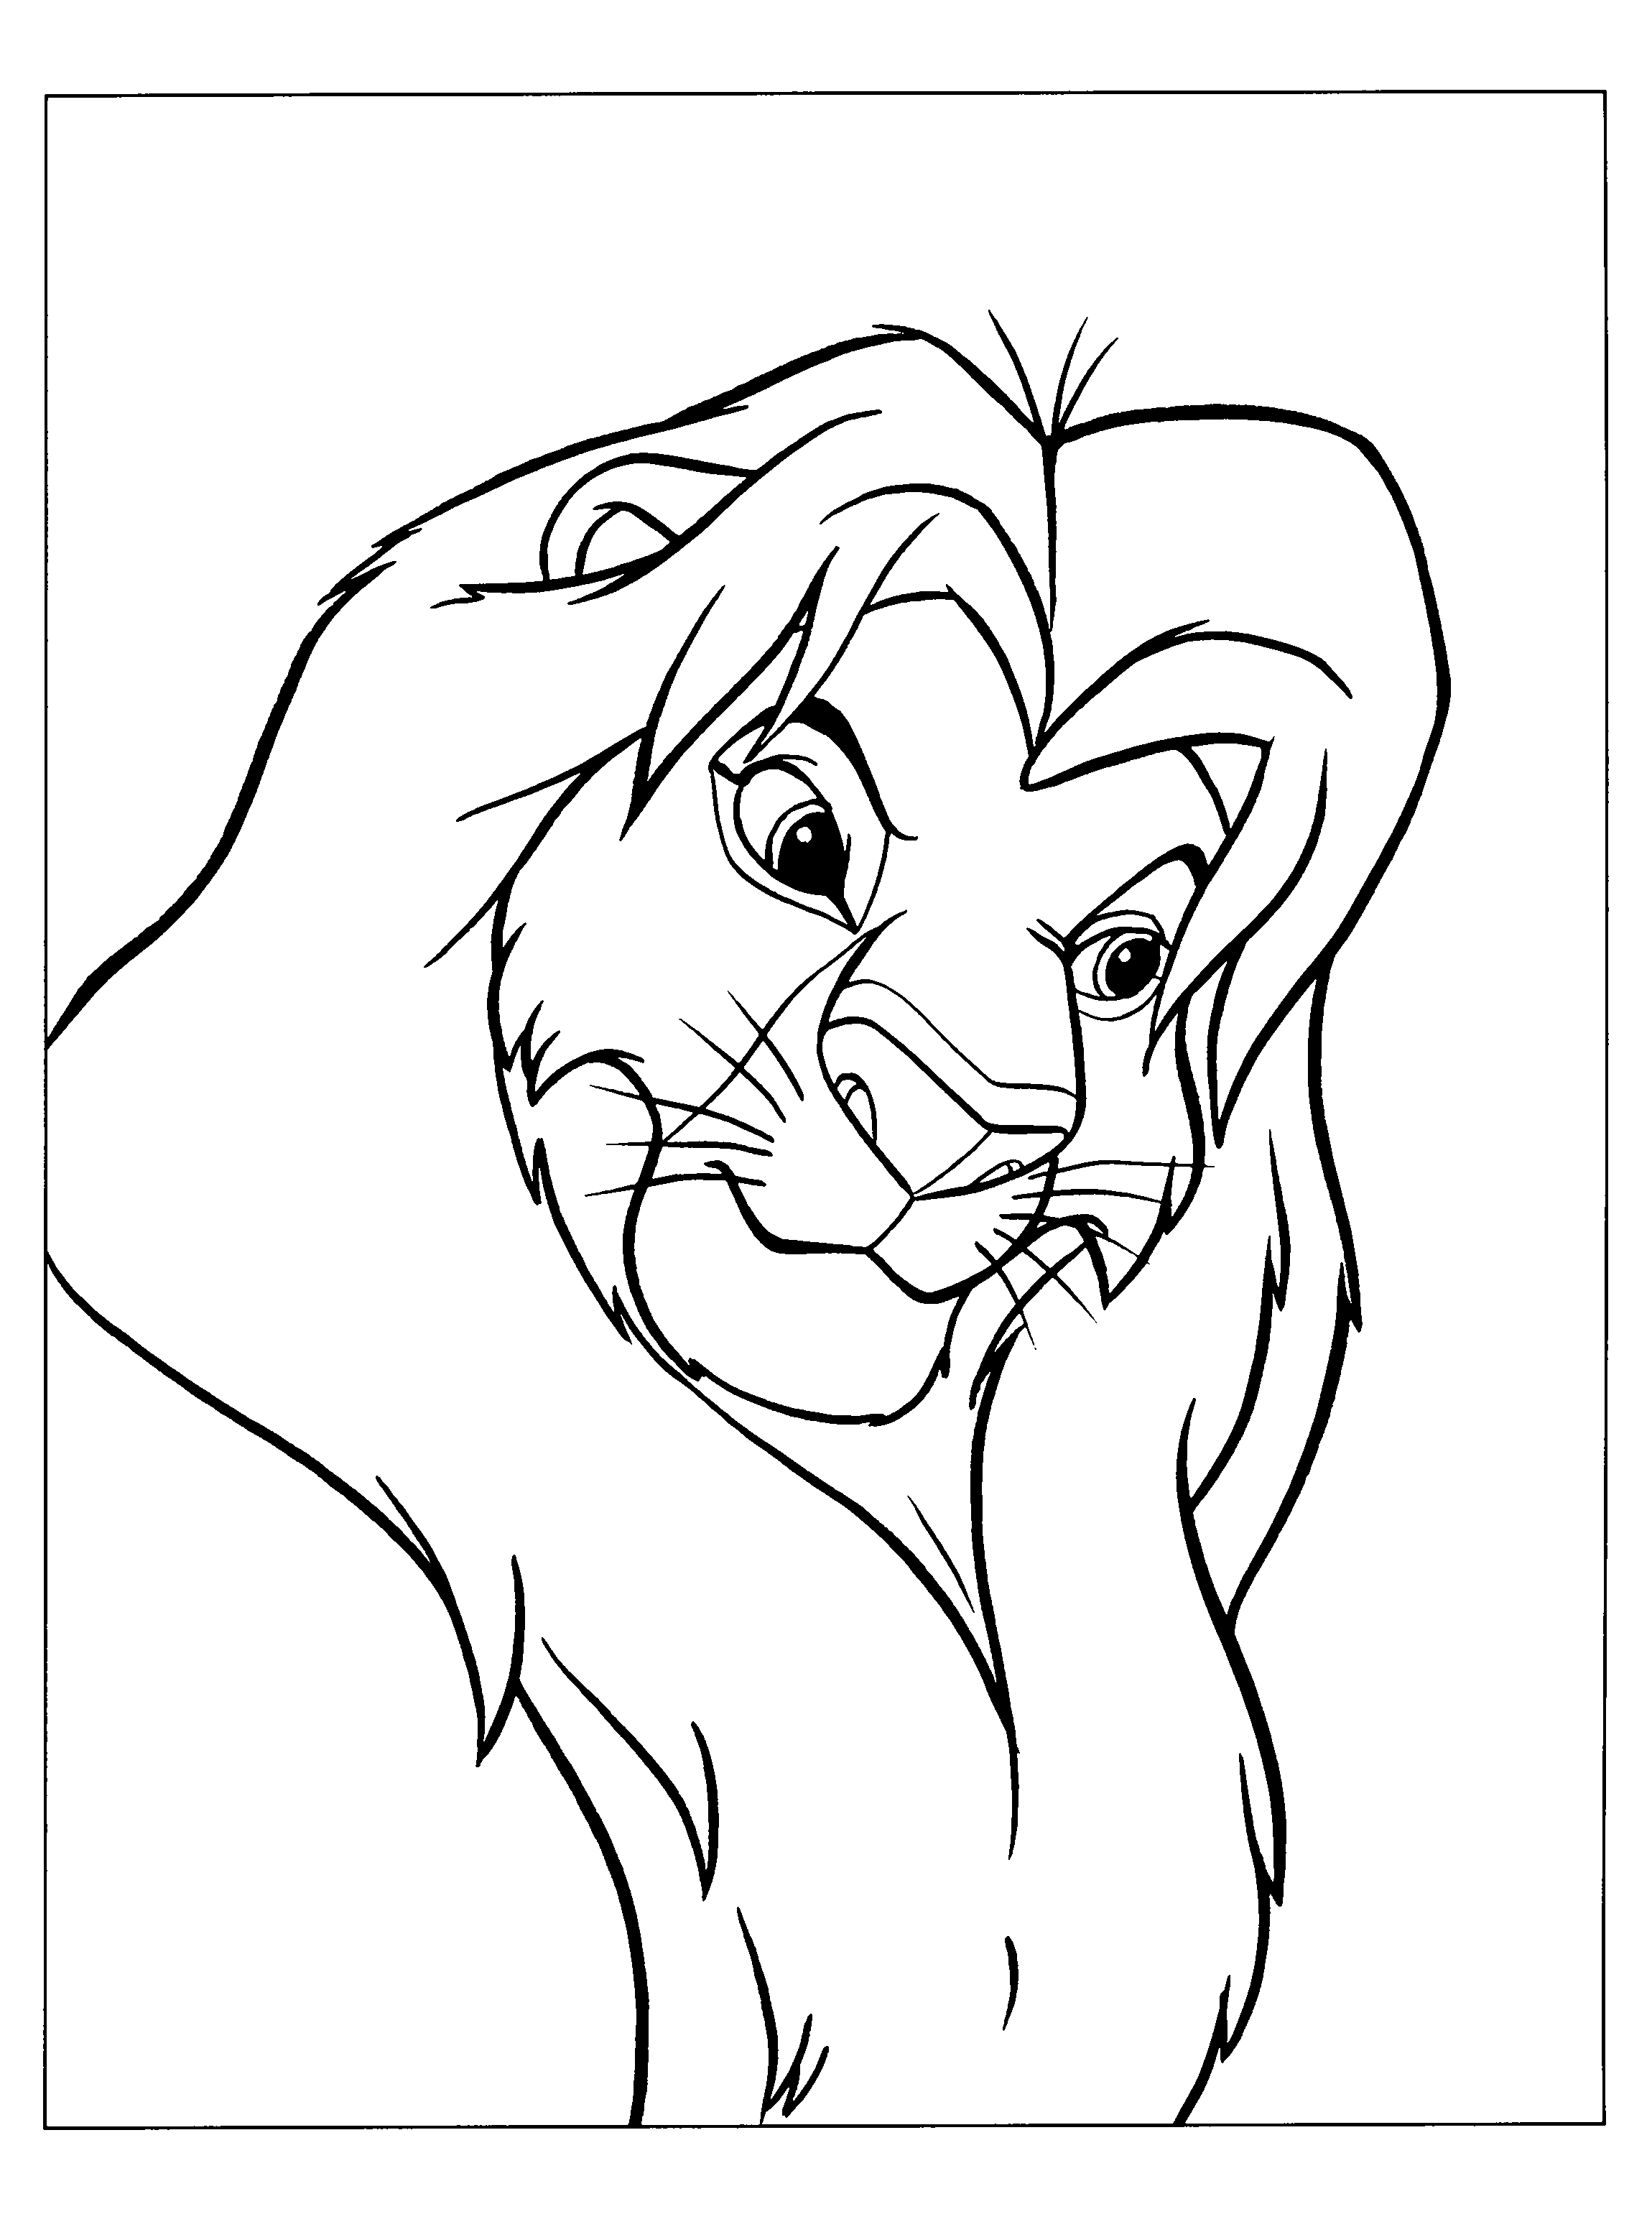 Lion King Simba Drawing at GetDrawings.com | Free for personal use ...